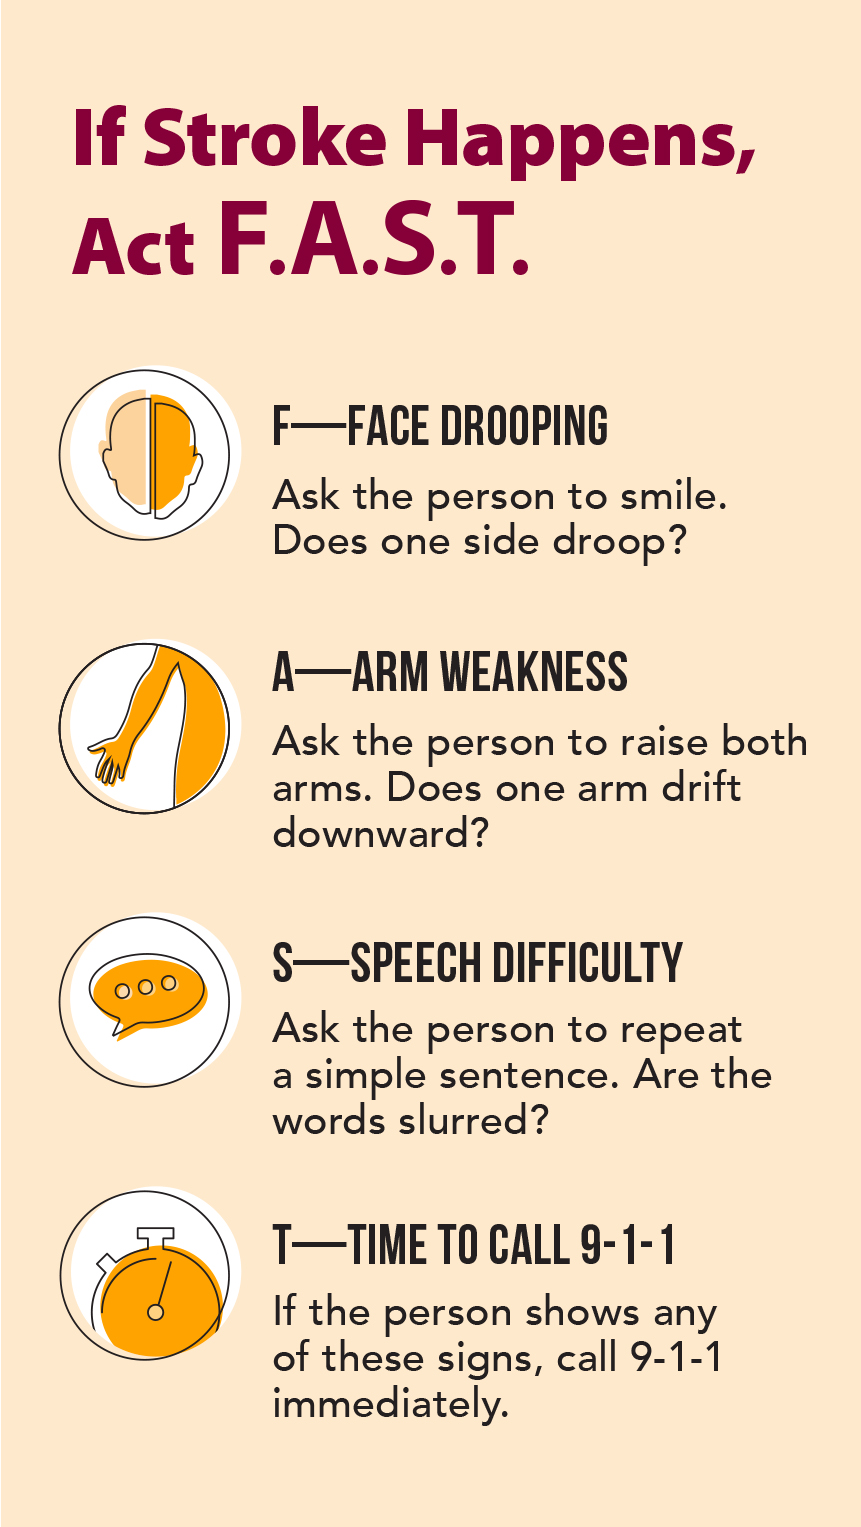 If stroke happens, act FAST. F - Face drooping. A - Arm weakness. S - Speech difficulty. T - Time to call 9-1-1.